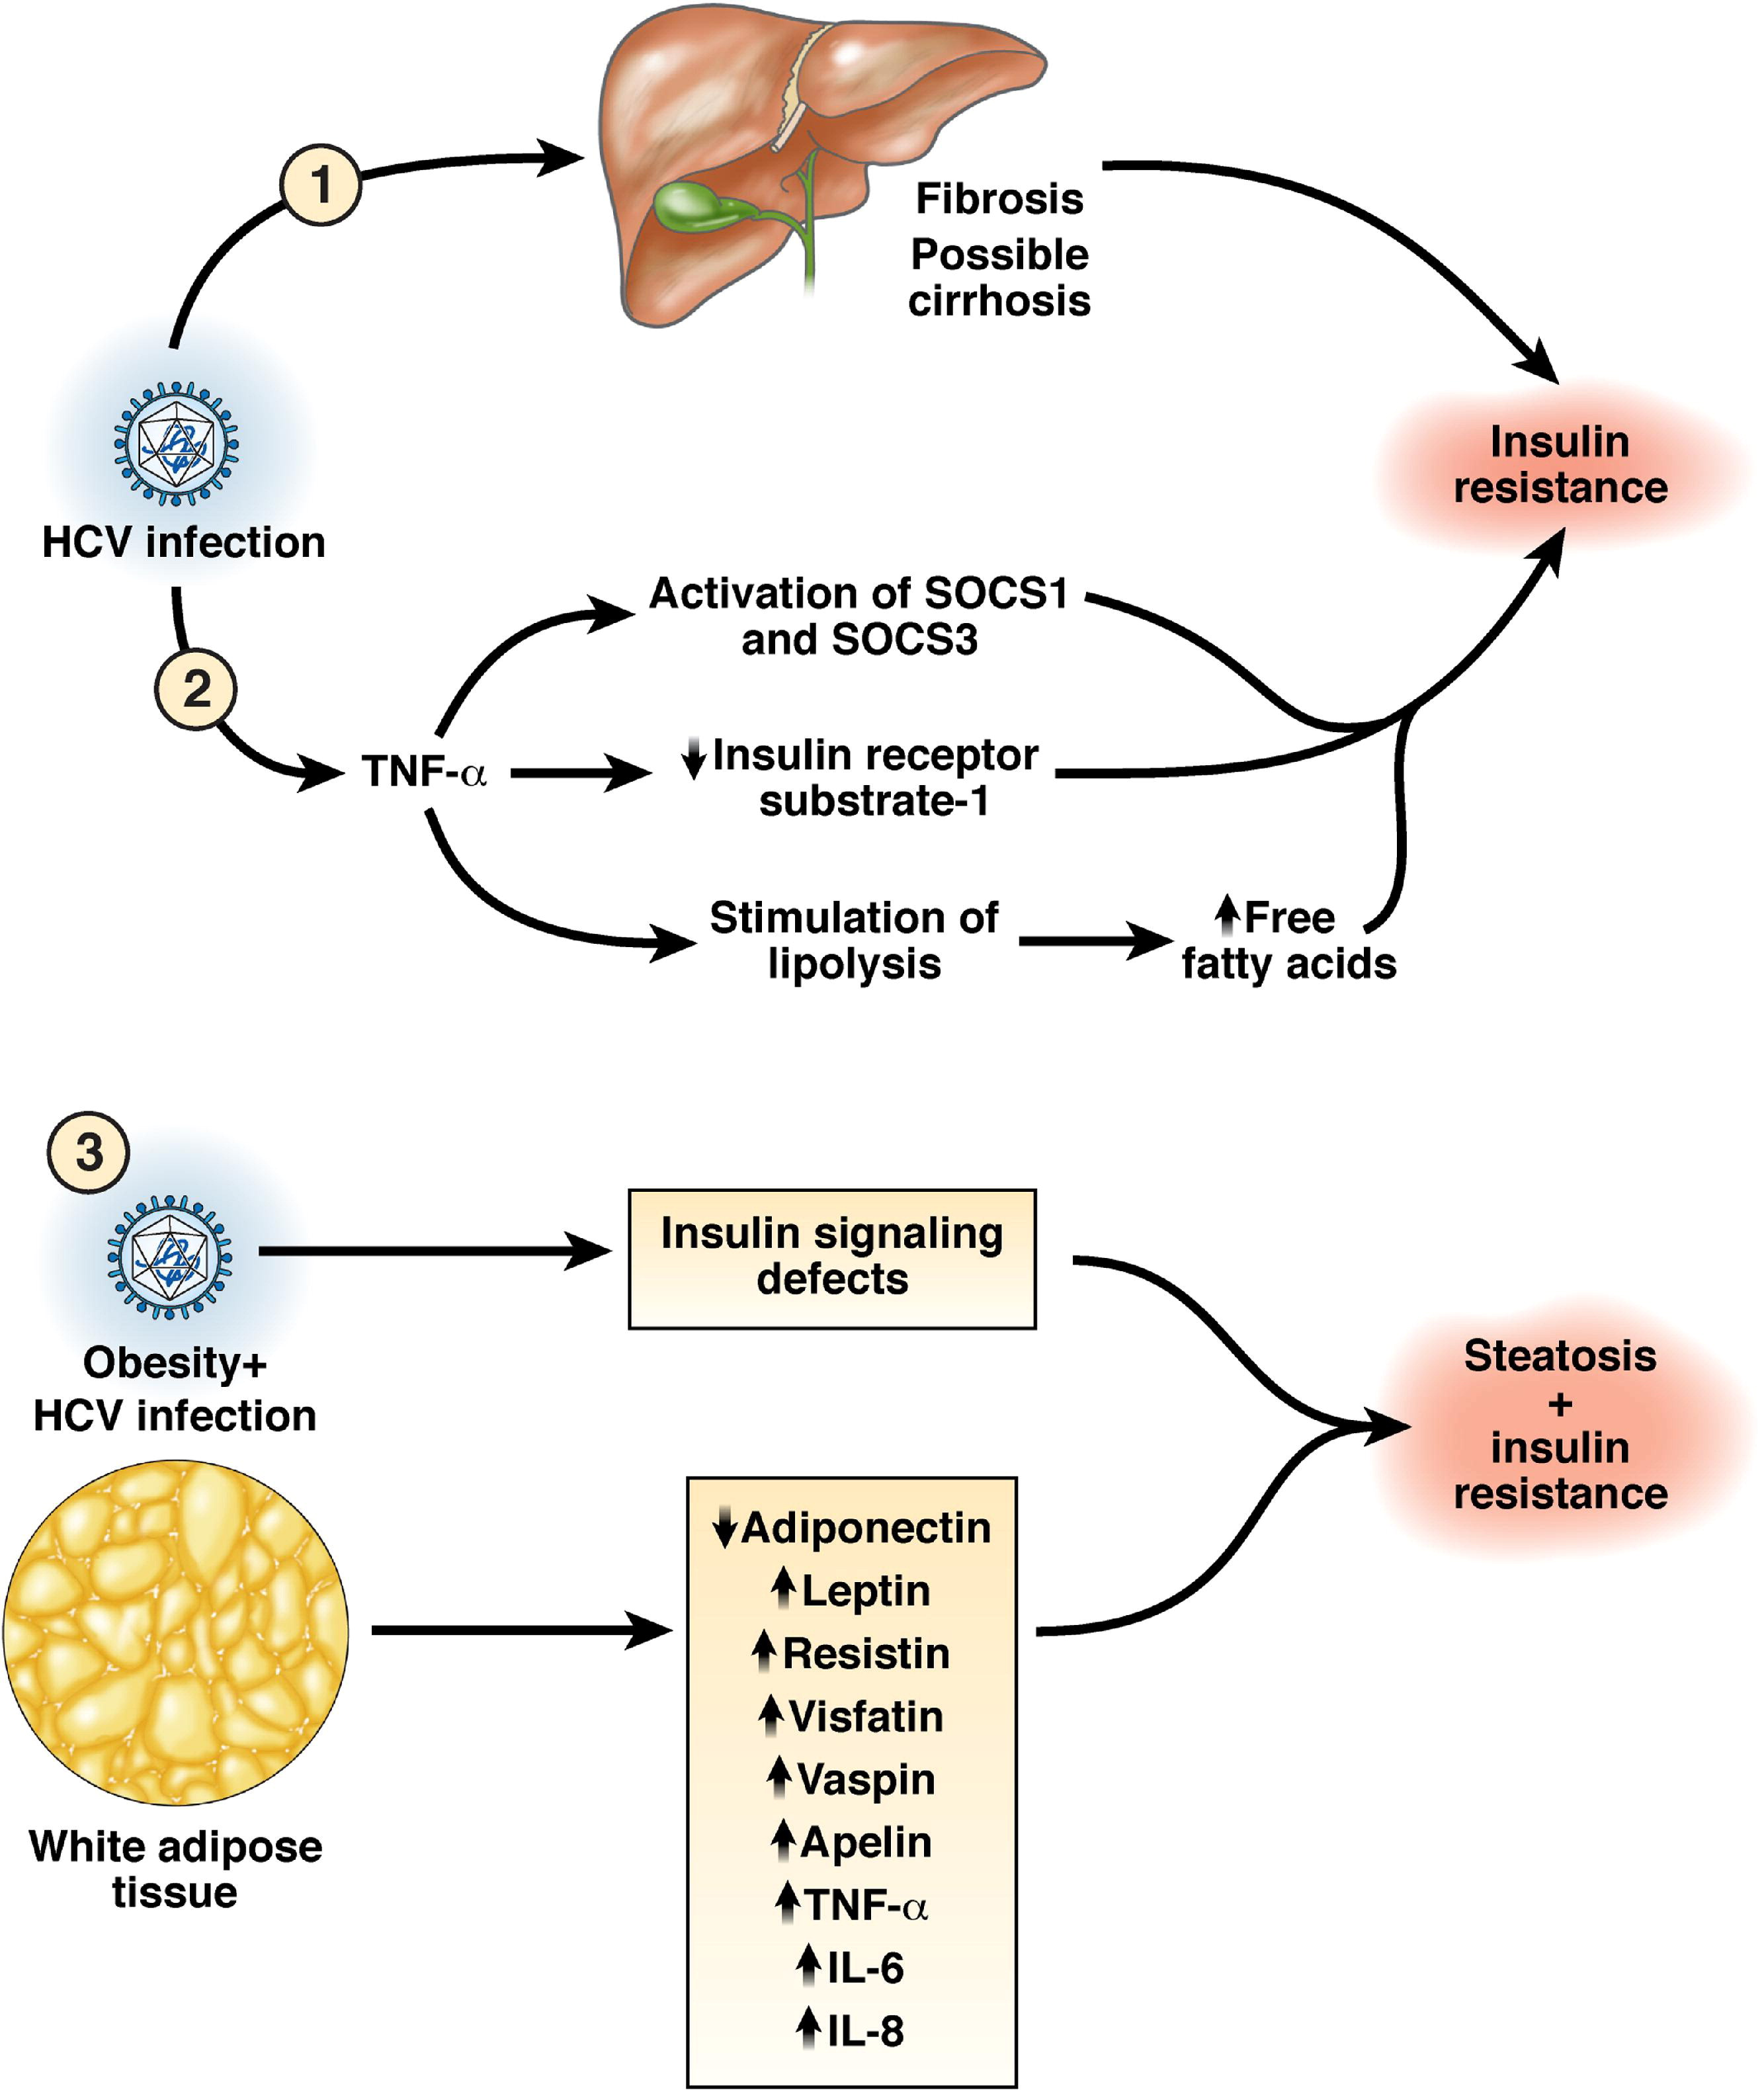 renal syndromes associated with nonsteroidal antiinflammatory drugs